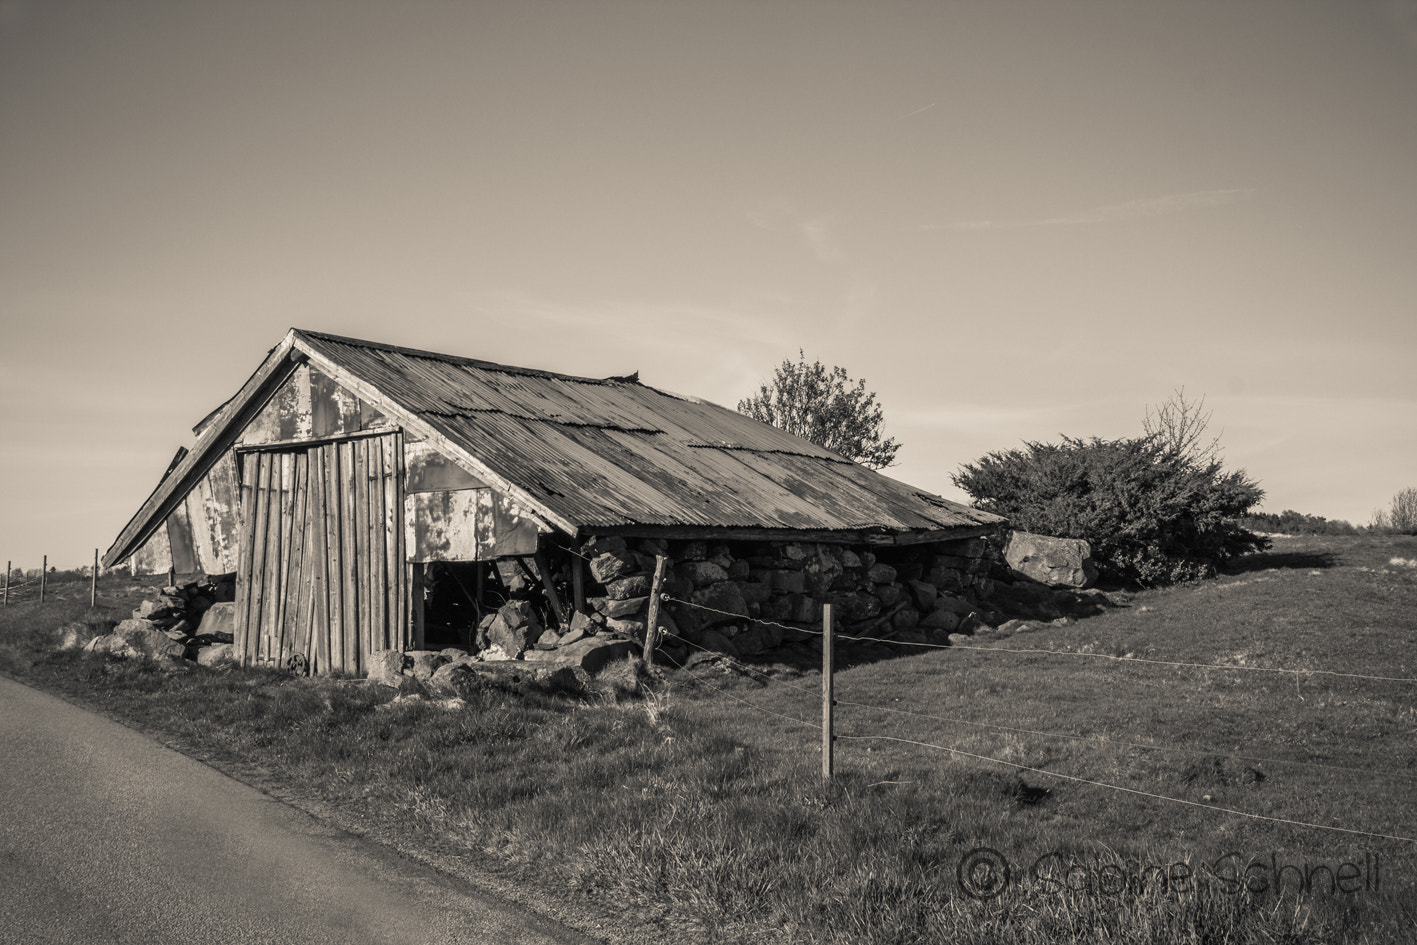 Photograph The old barn by Sabine Schnell on 500px